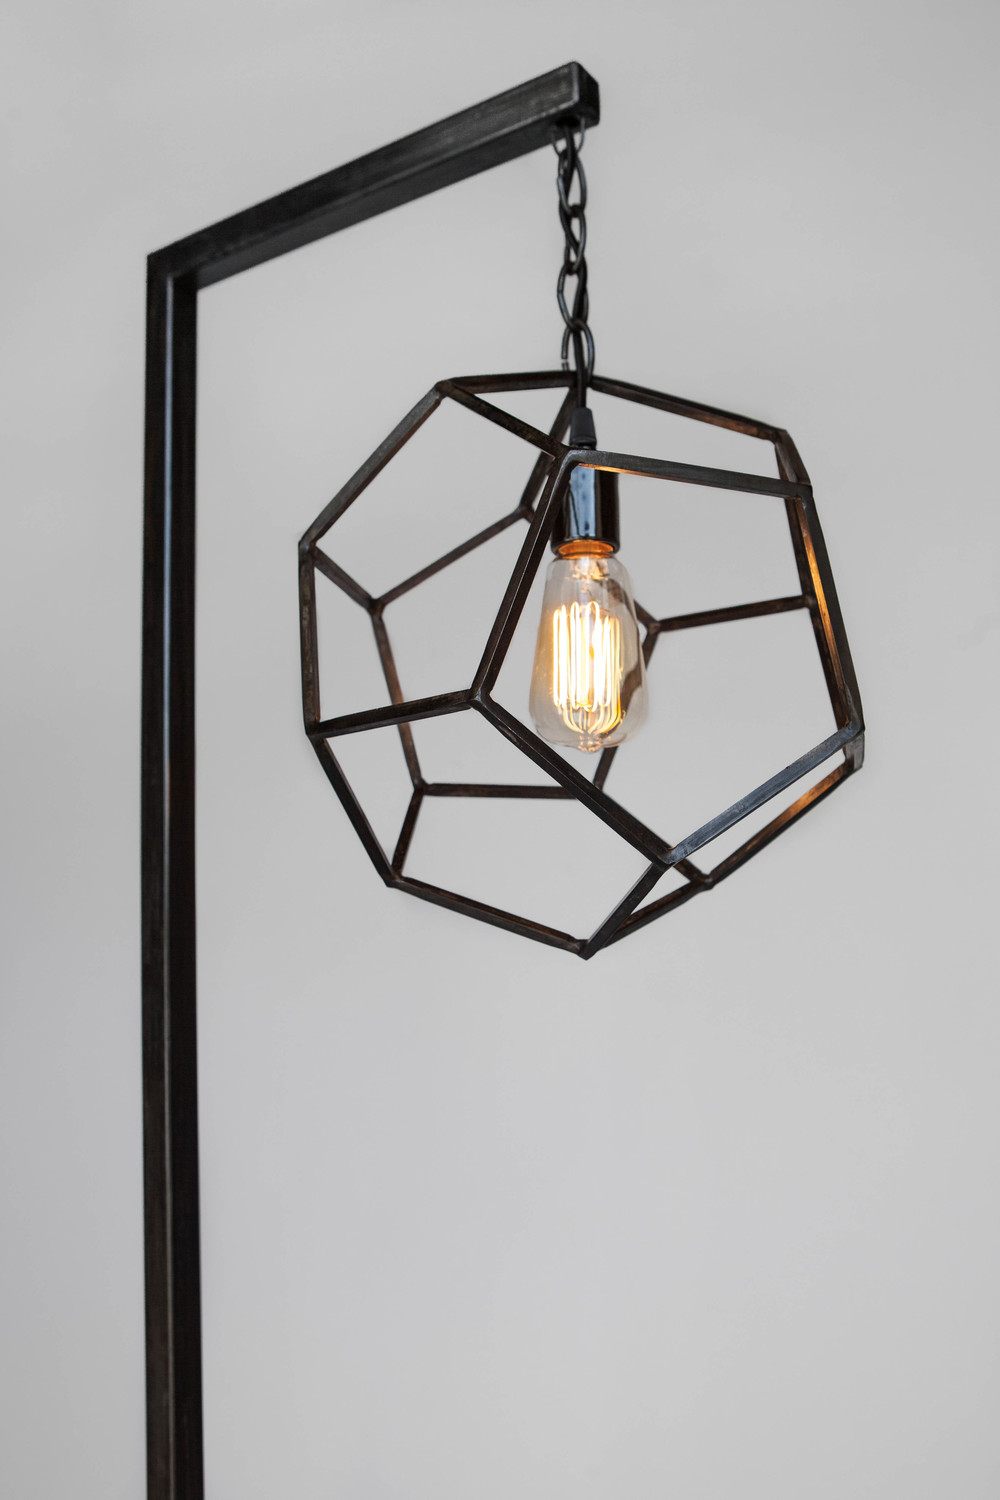 2015-02-18 Dodecahedron Floor Lamp - Final -2.jpg